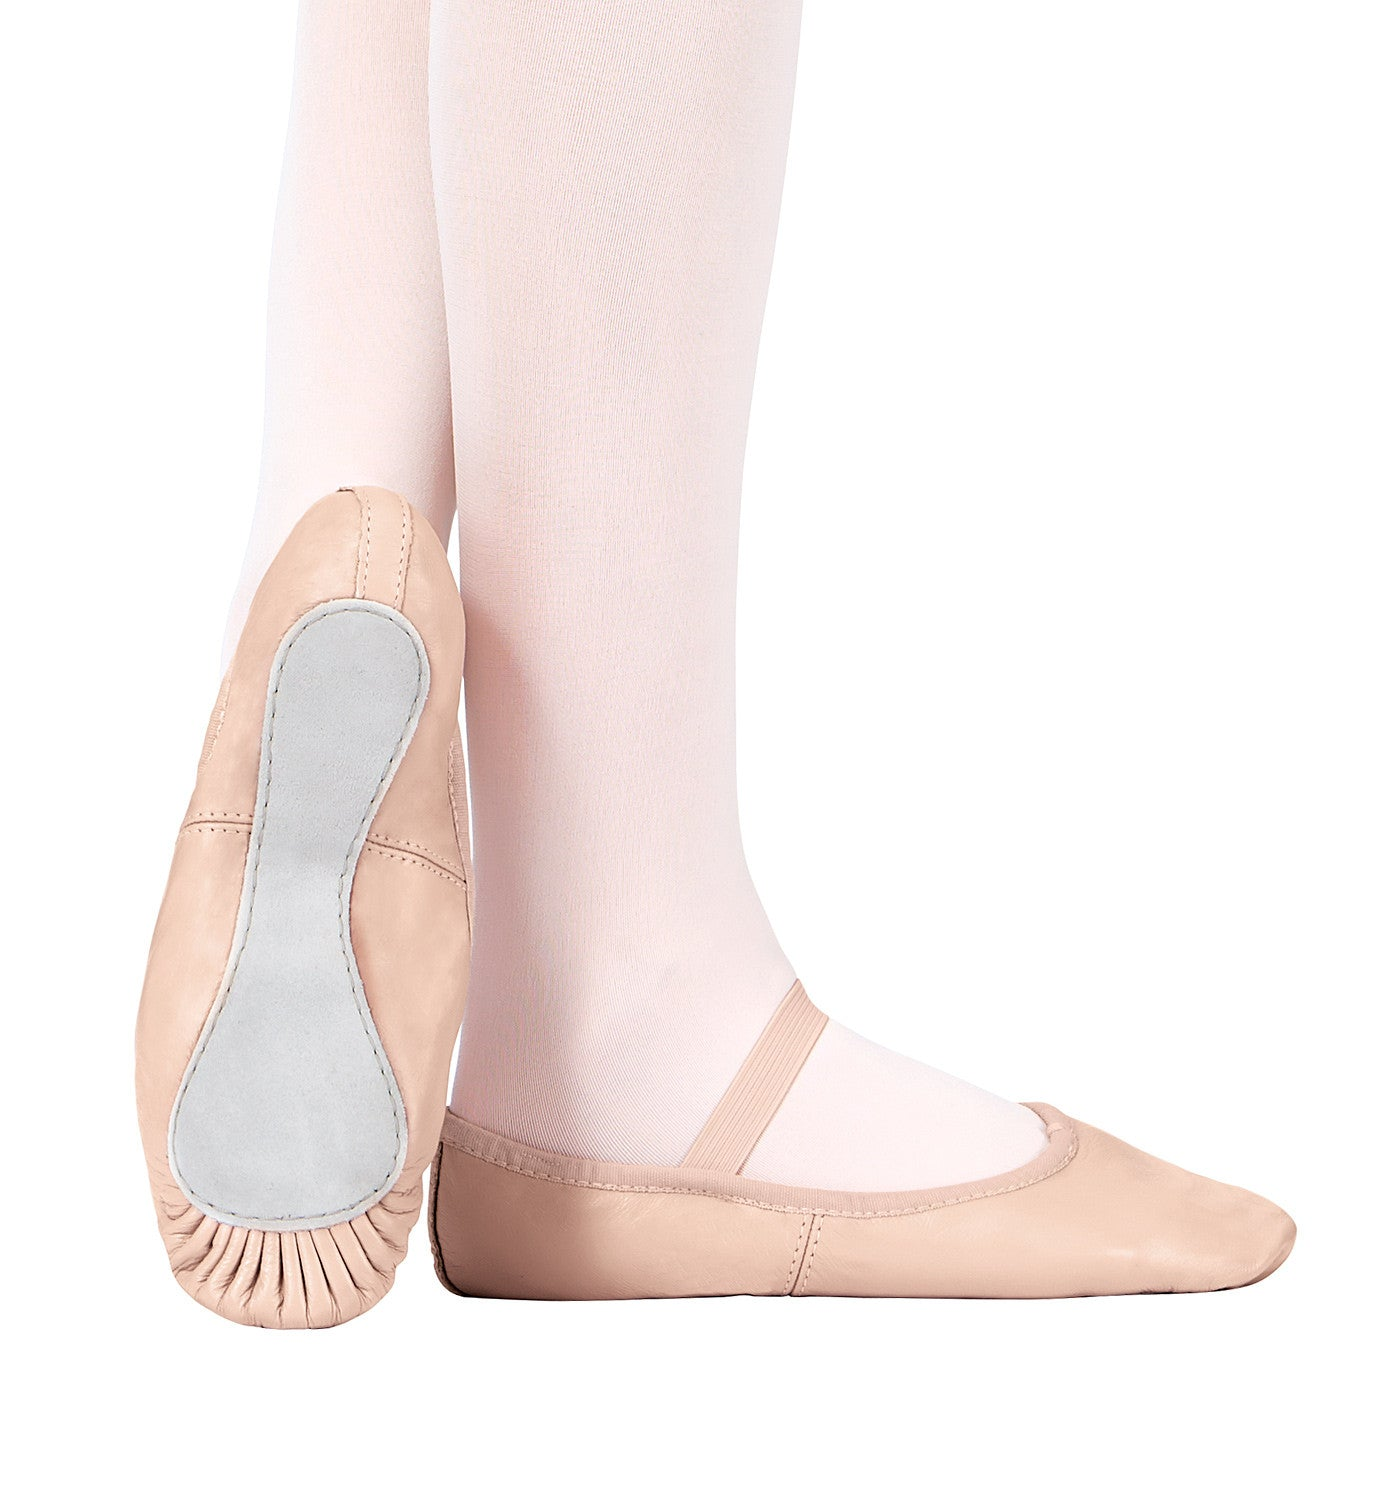 Theatricals Premium Leather Full Sole Ballet Shoes for Girls